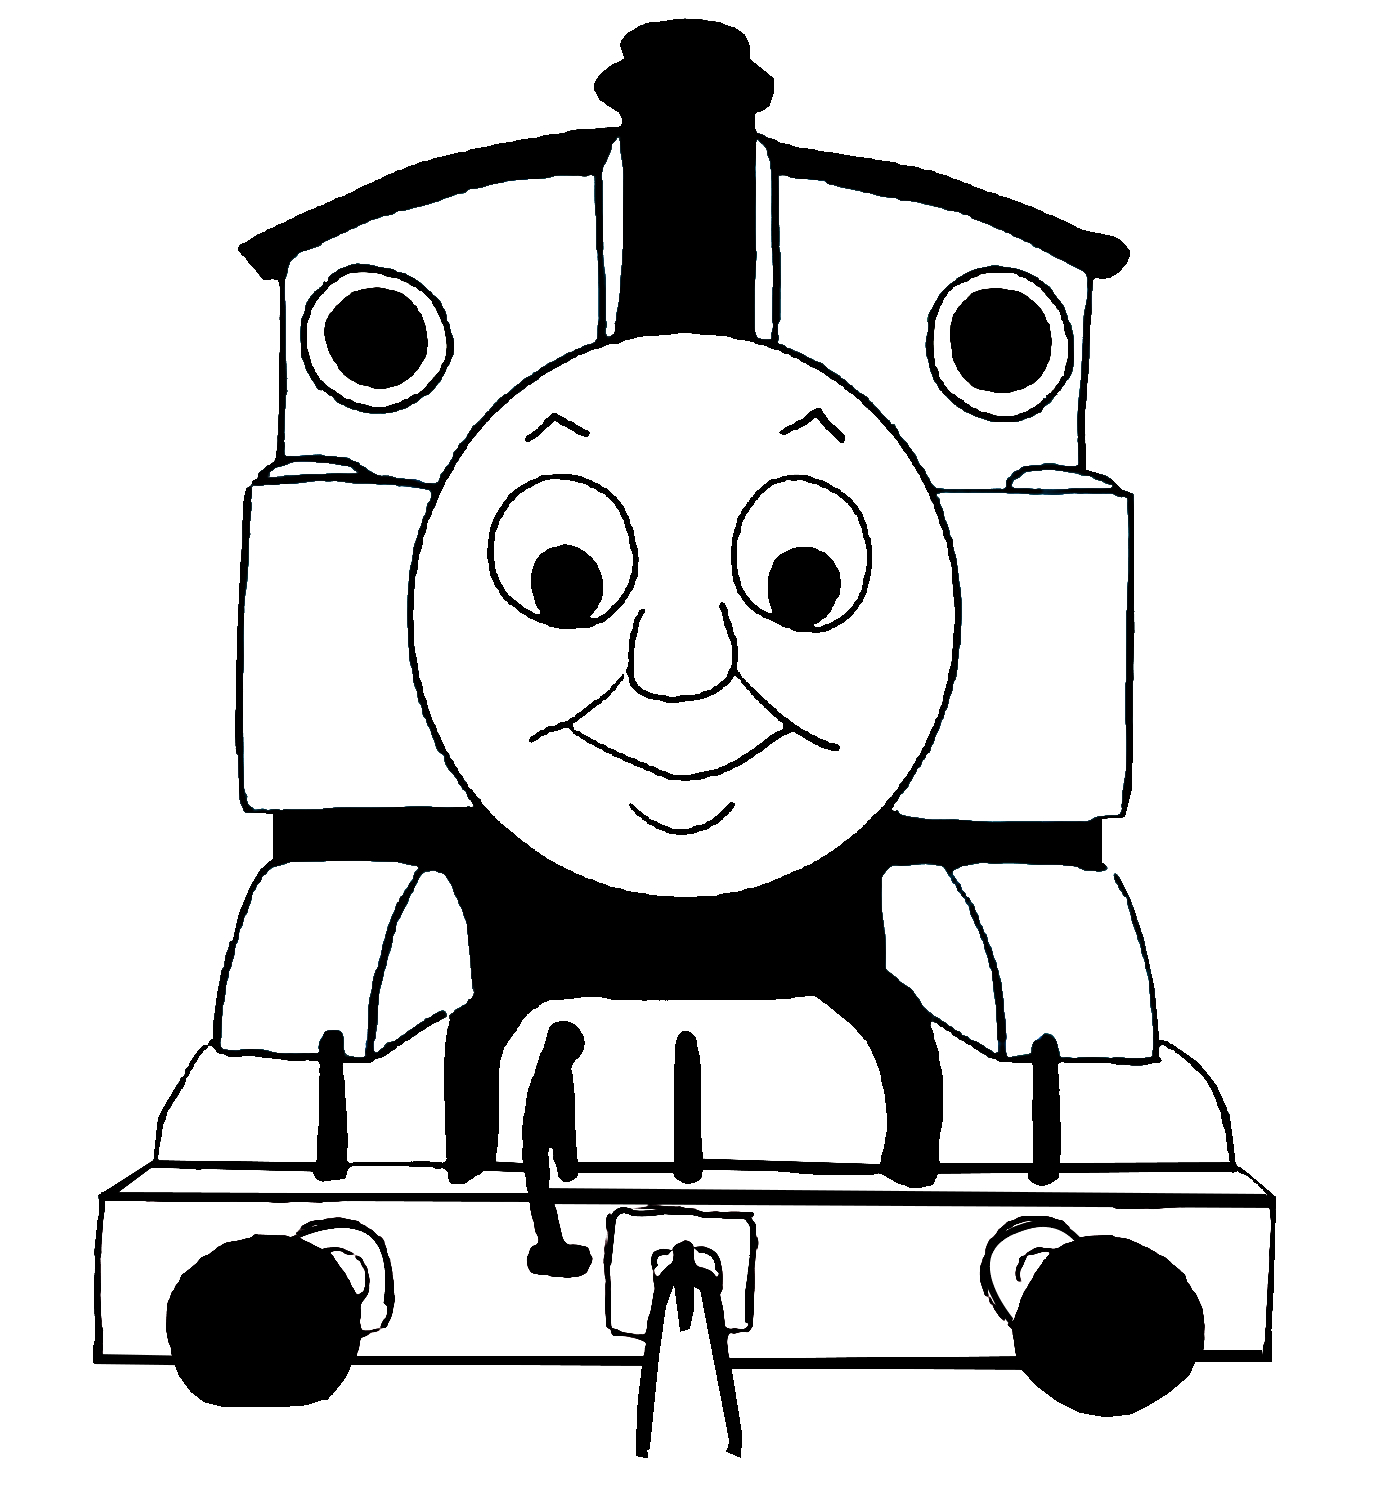 1915 train free clipart graphic royalty free library Free Thomas Cliparts, Download Free Clip Art, Free Clip Art on ... graphic royalty free library